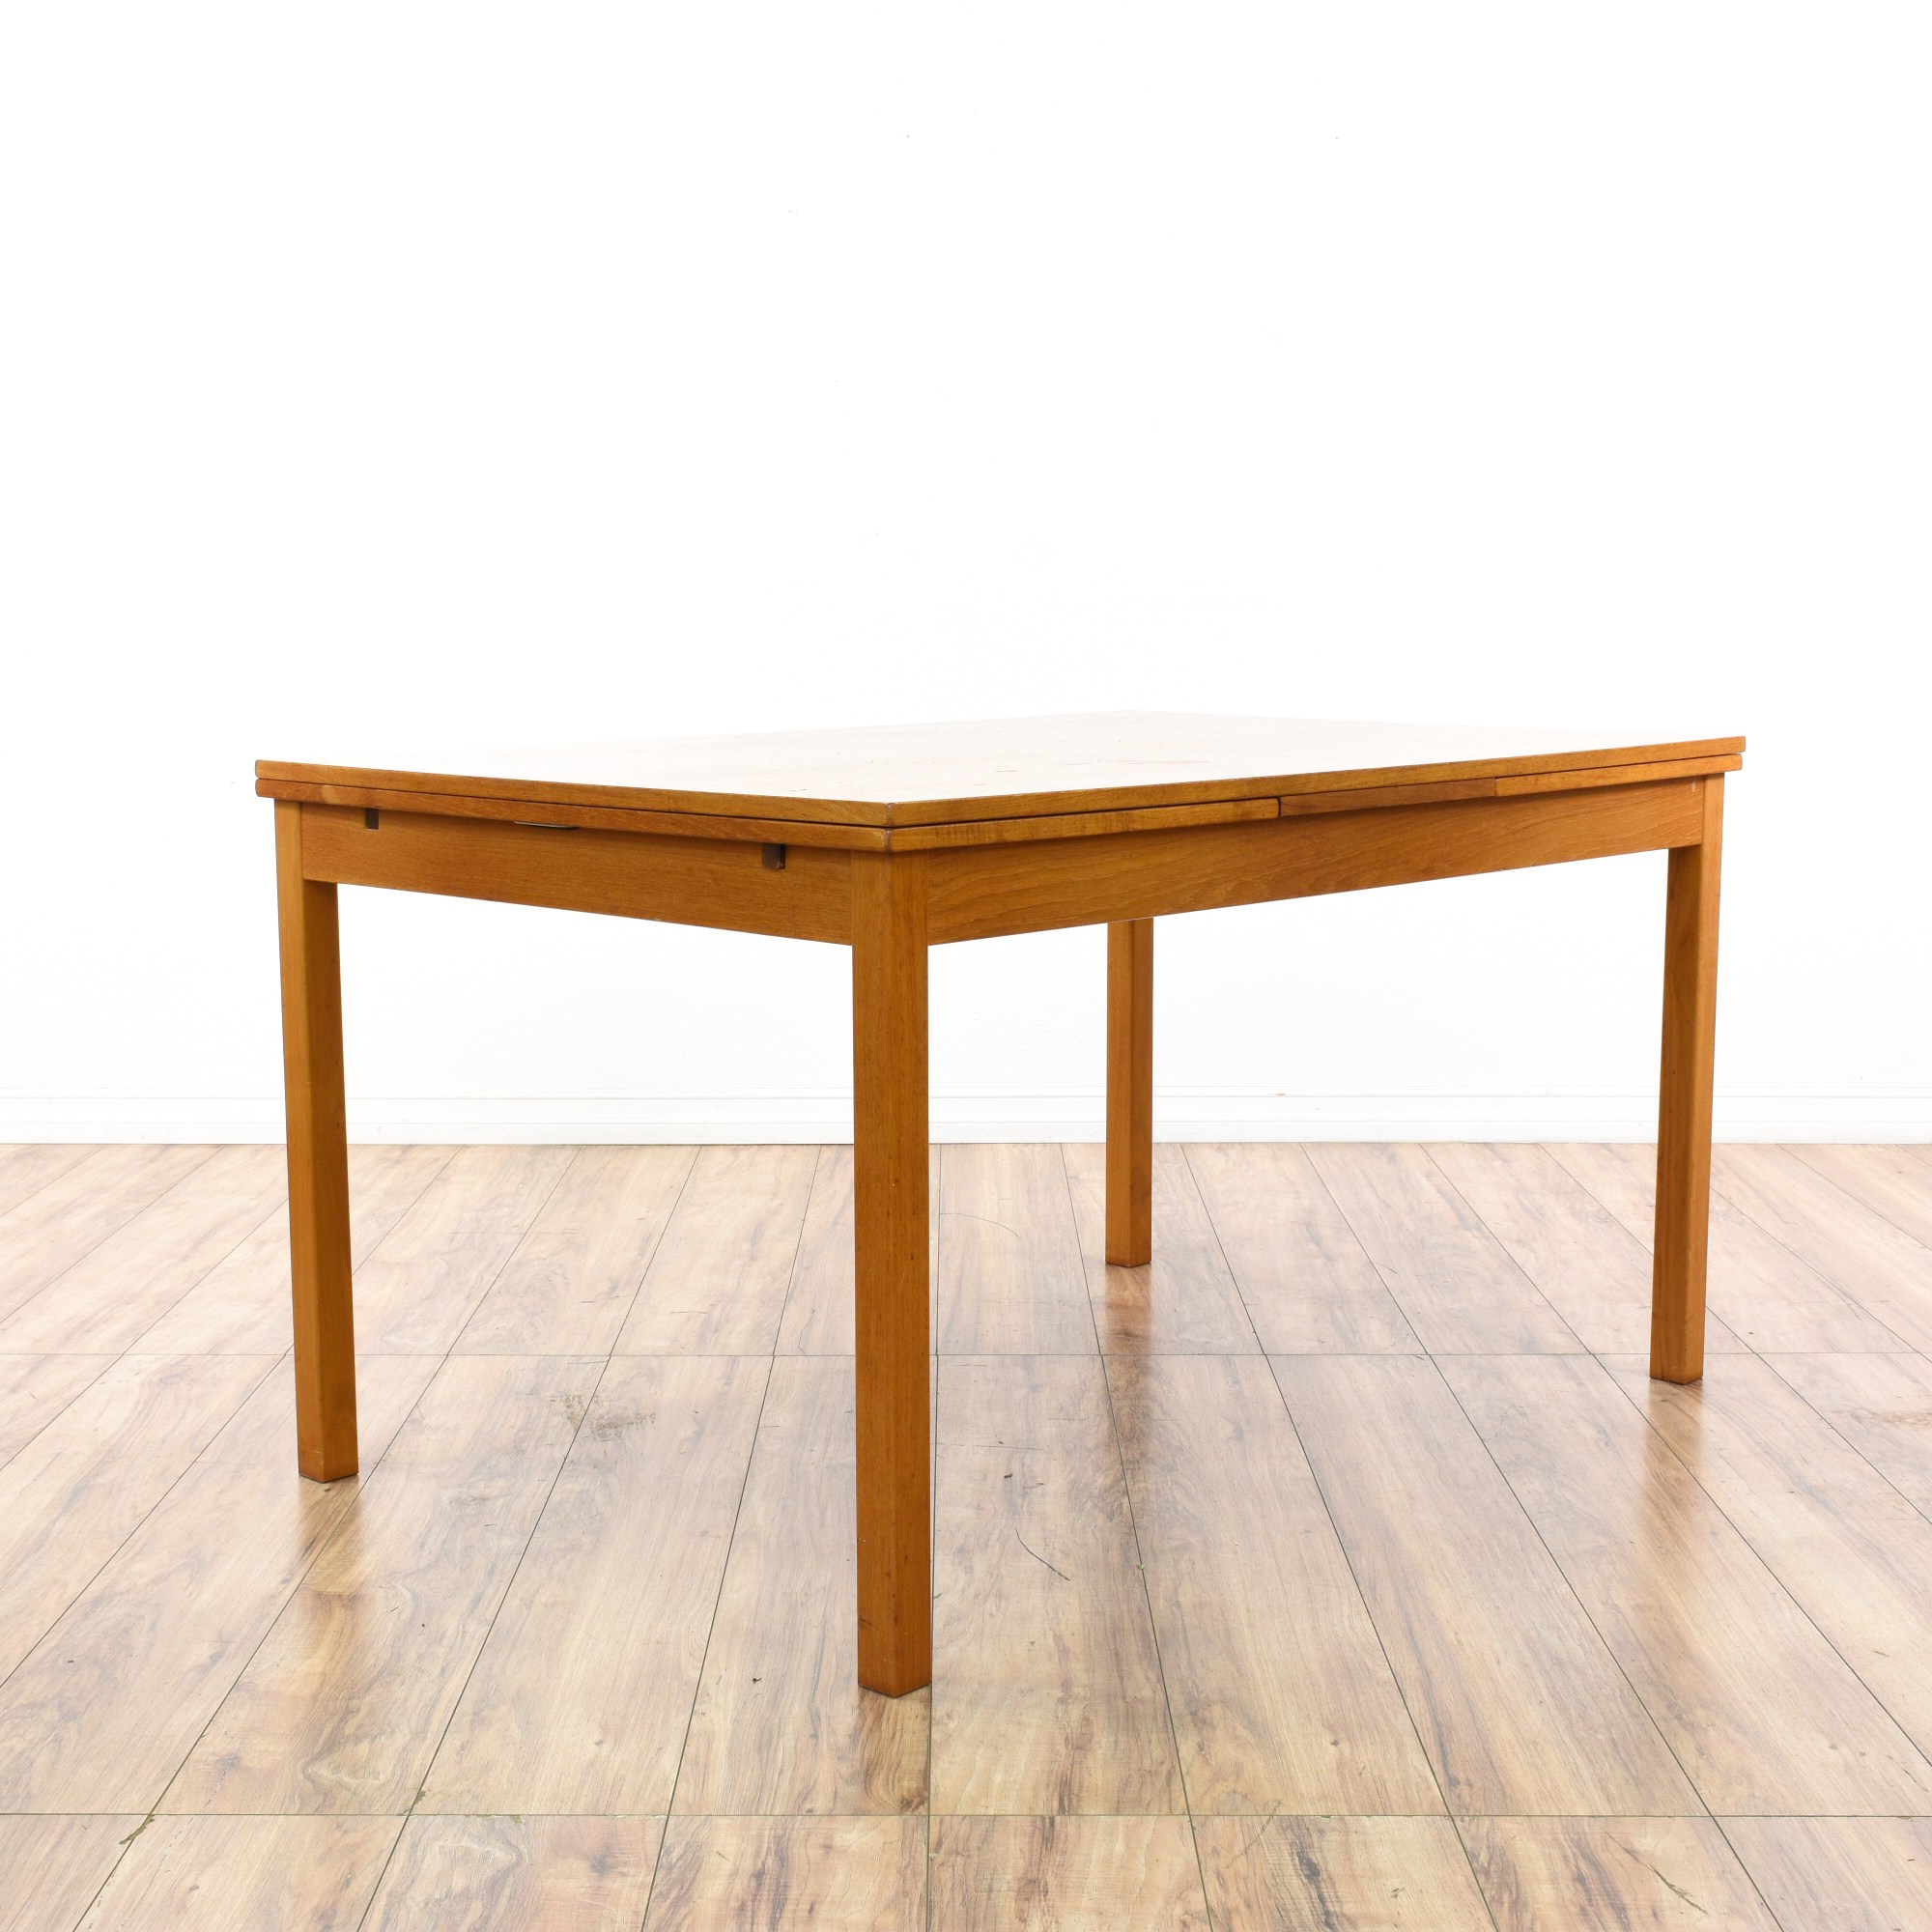 Table With Slide Out Leaves Danish Modern Teak Dining Table W Pull Out Leaves